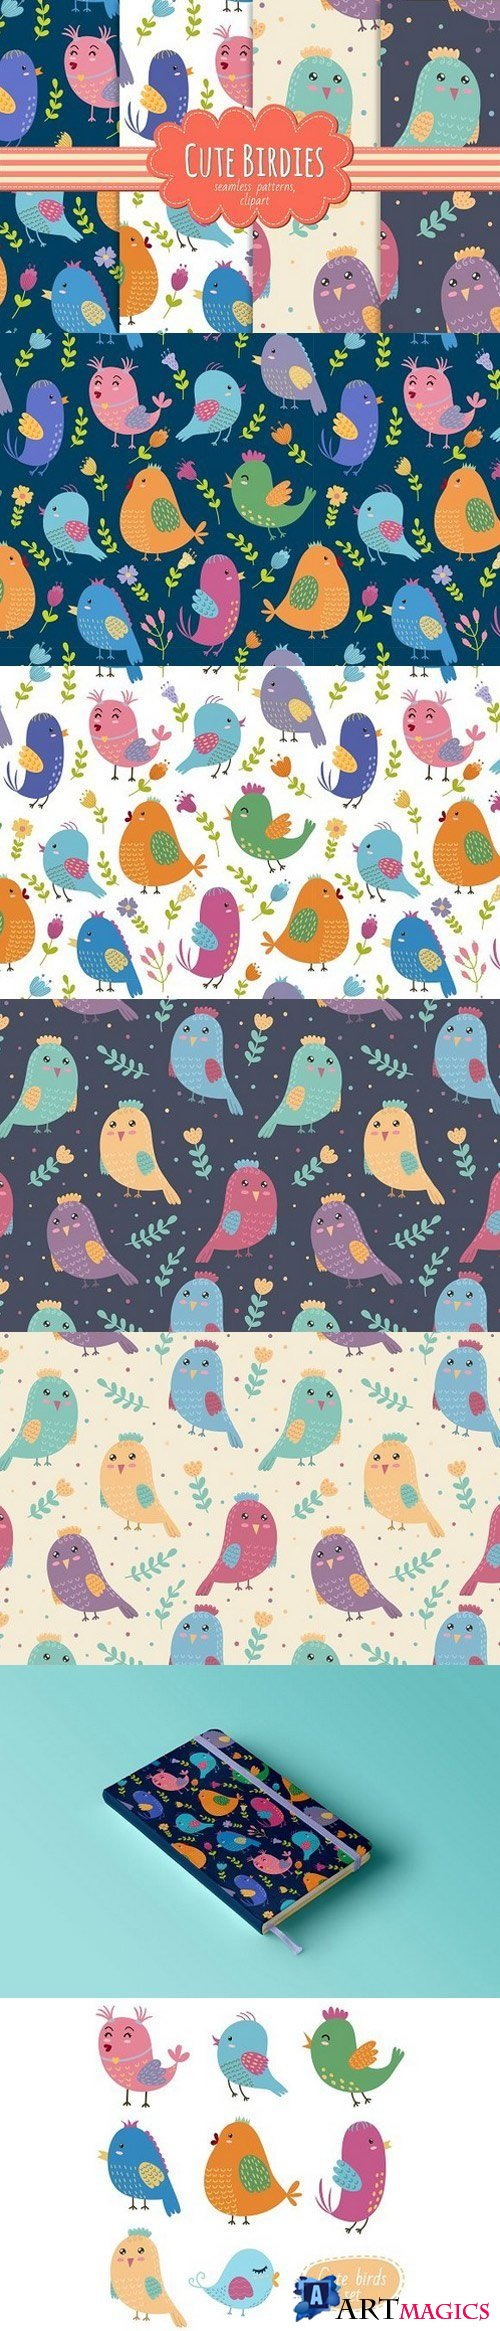 Cute Birdies: patterns&clipart 970718